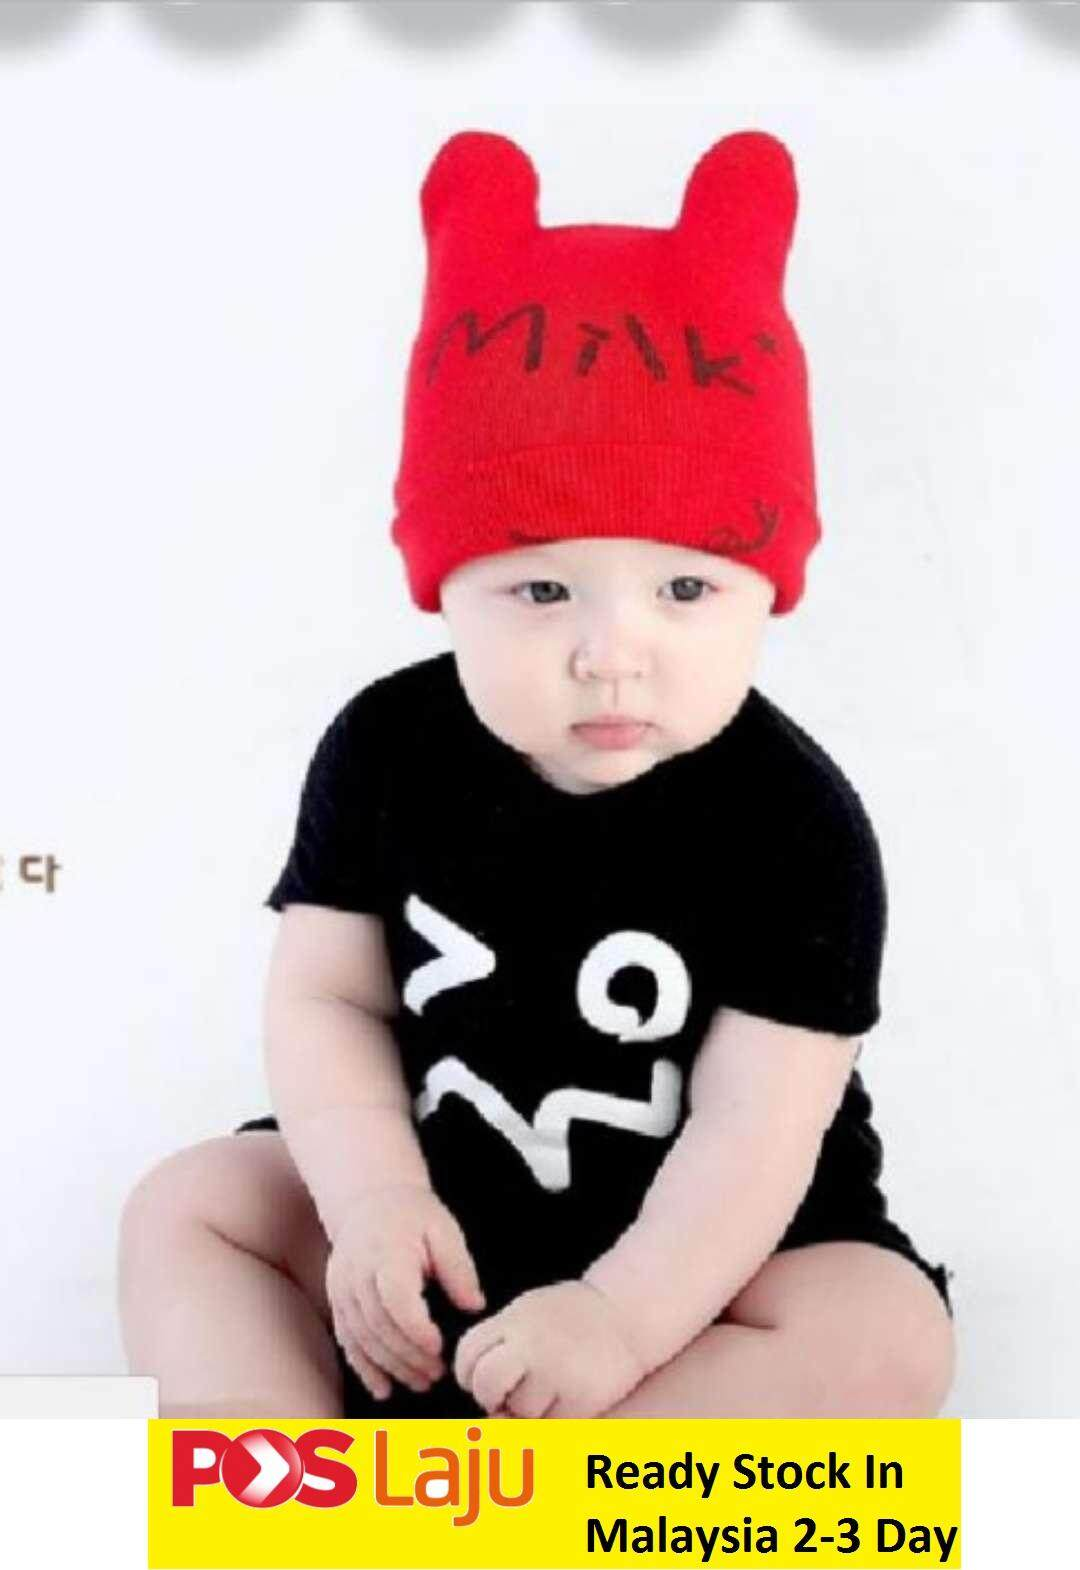 d293195fa68 Baby Boys  Accessories - Hats   Caps - Buy Baby Boys  Accessories ...